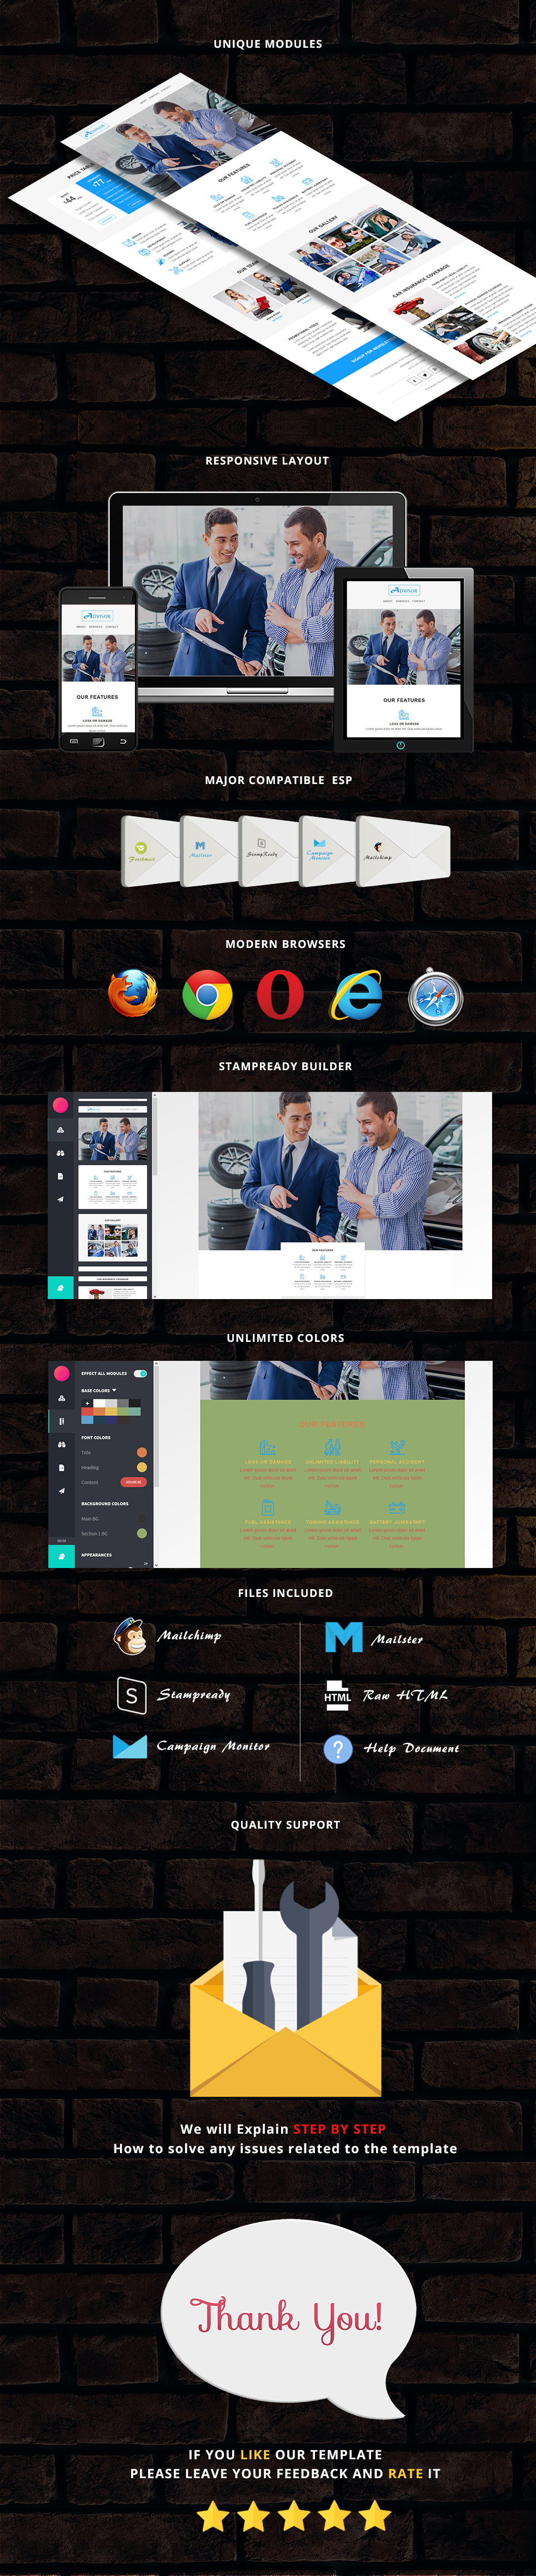 advisor - Responsive Email Template + Stampready Builder